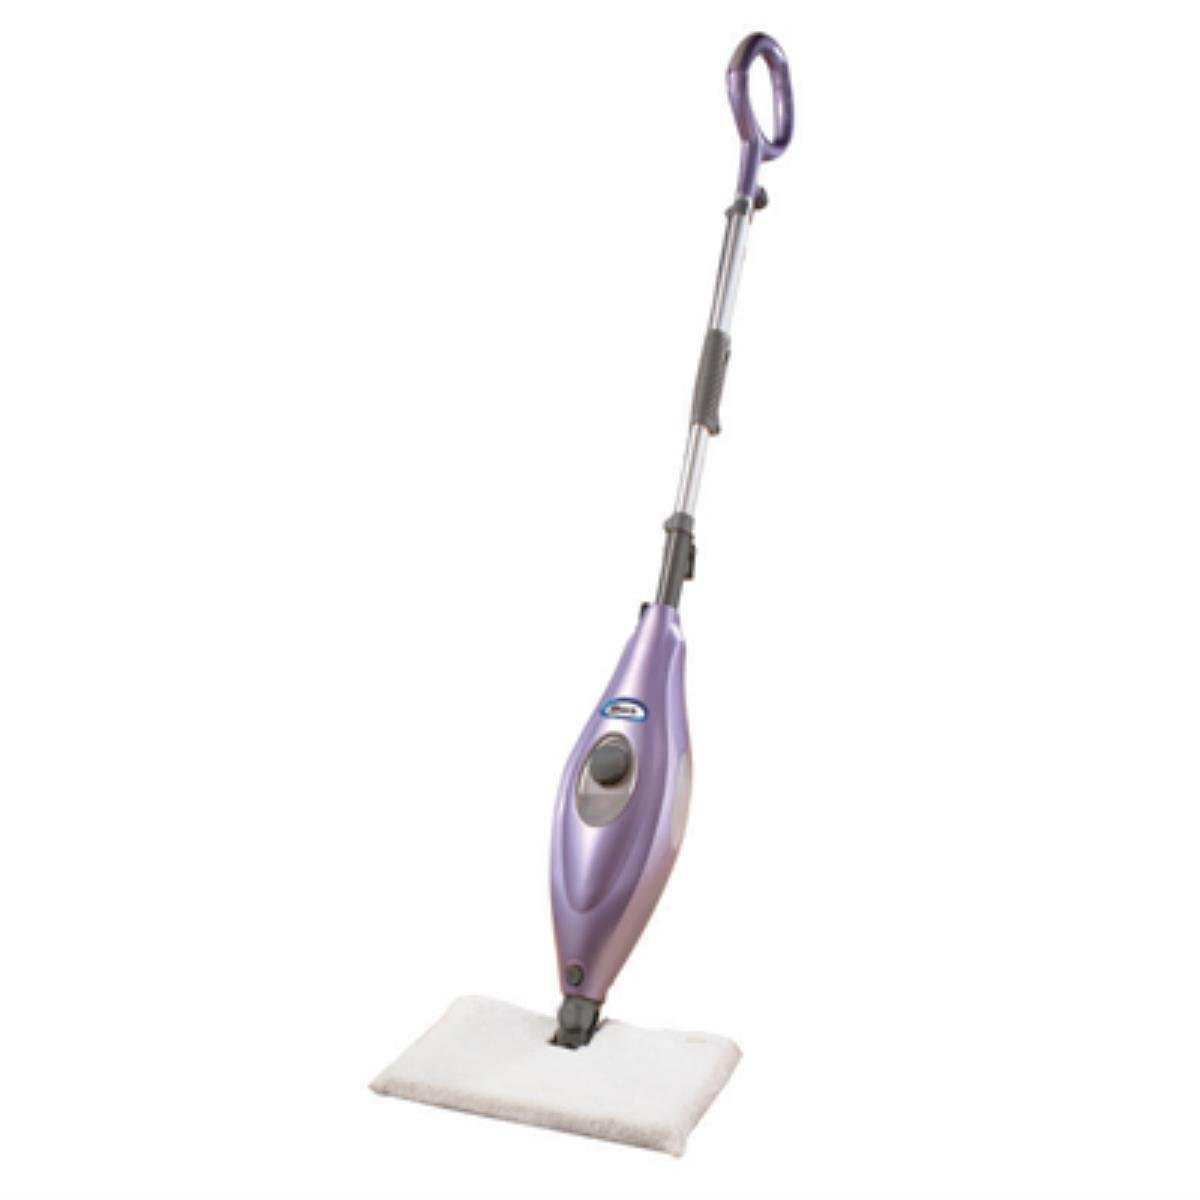 Best Mop for Wood Floors 1